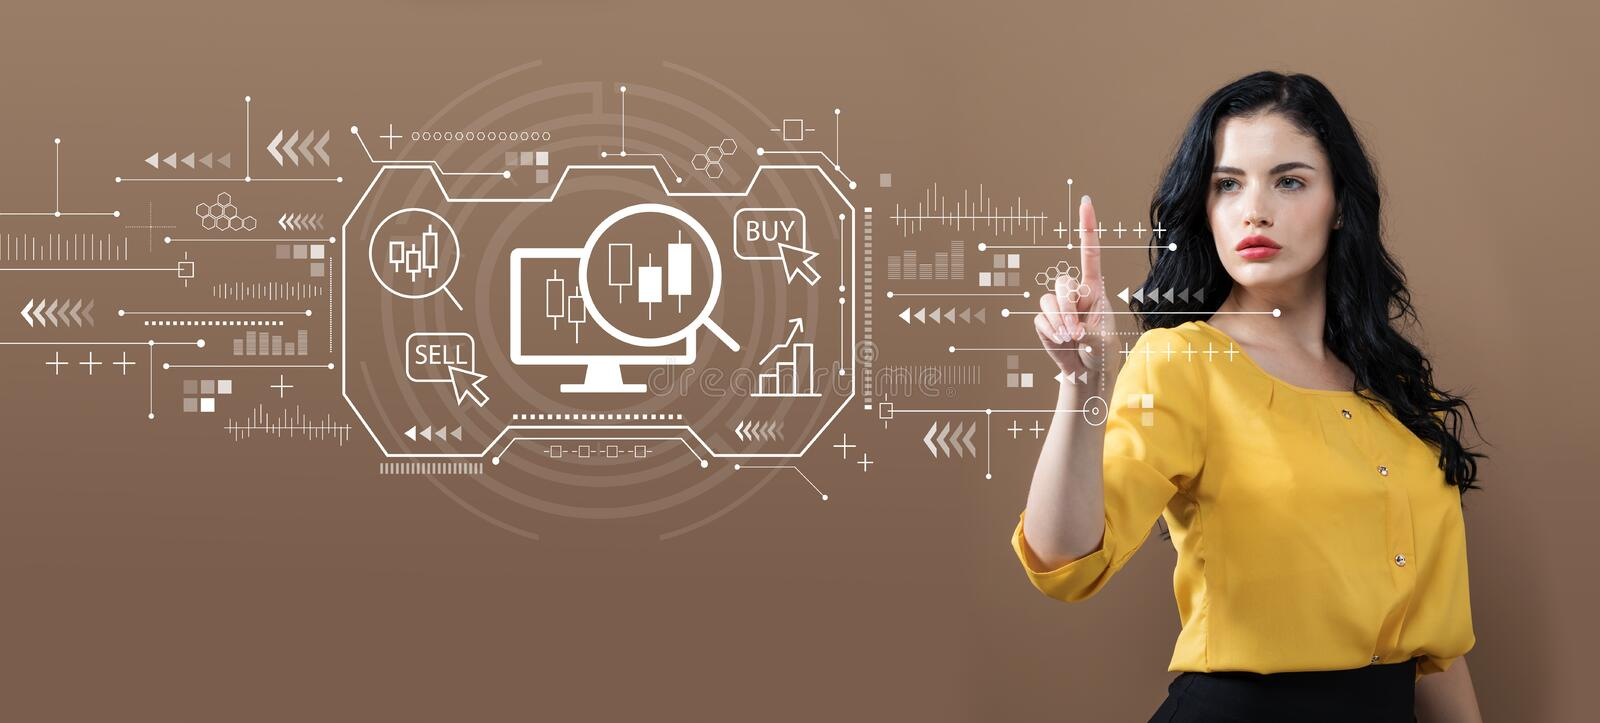 Stock trading concept with business woman stock photography